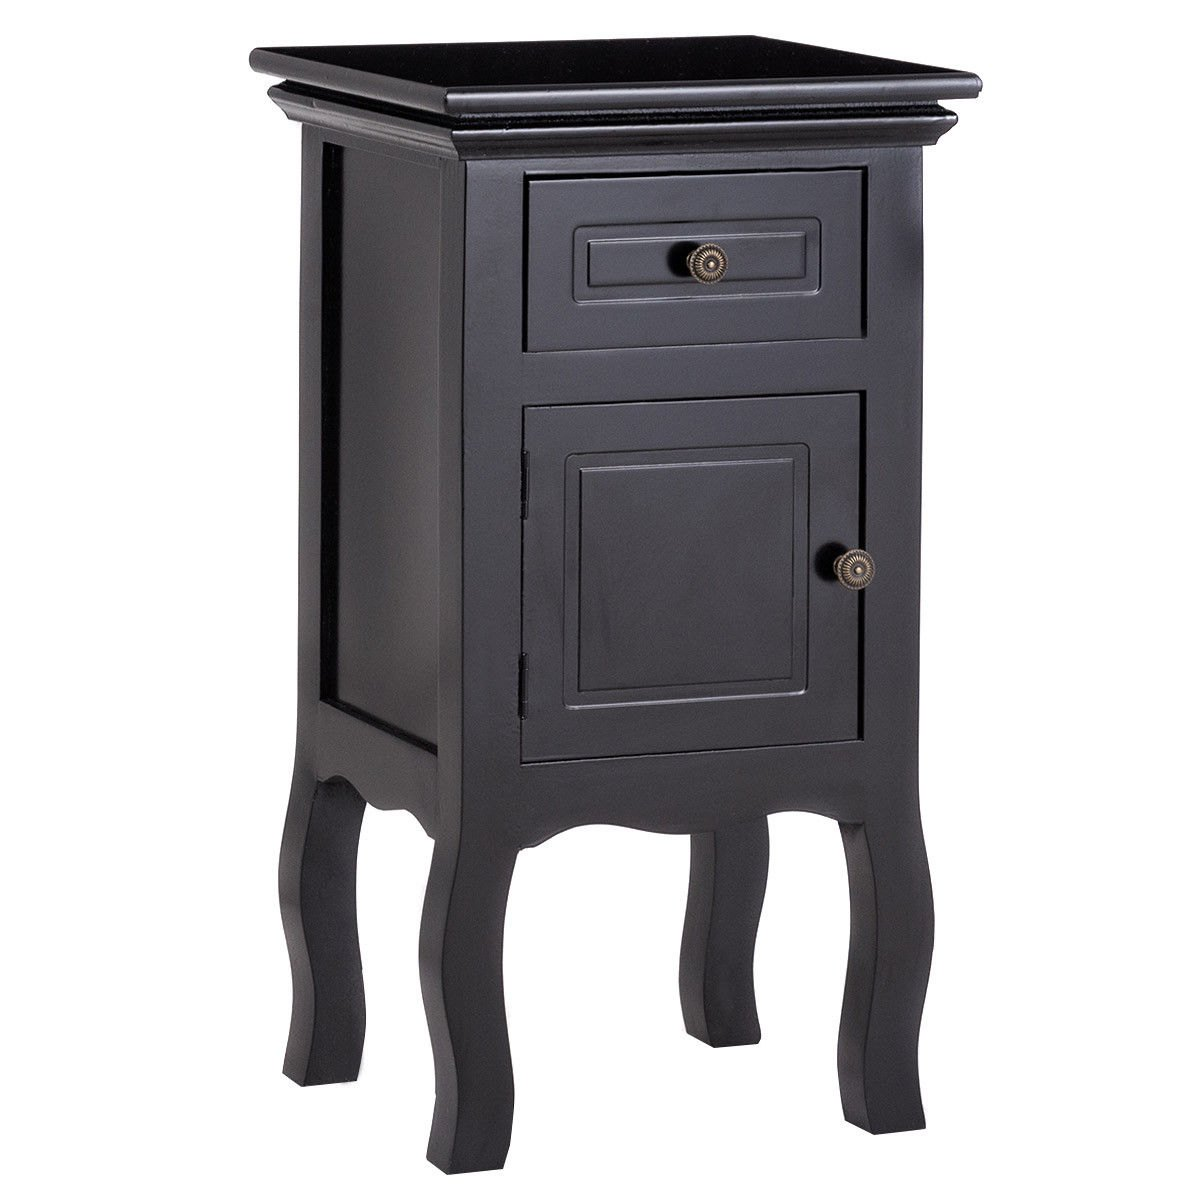 way black nightstand storage drawer and cabinet wood white accent table with end grey lamp mango pier one dining room sets small entryway console queen frame dale tiffany buffet